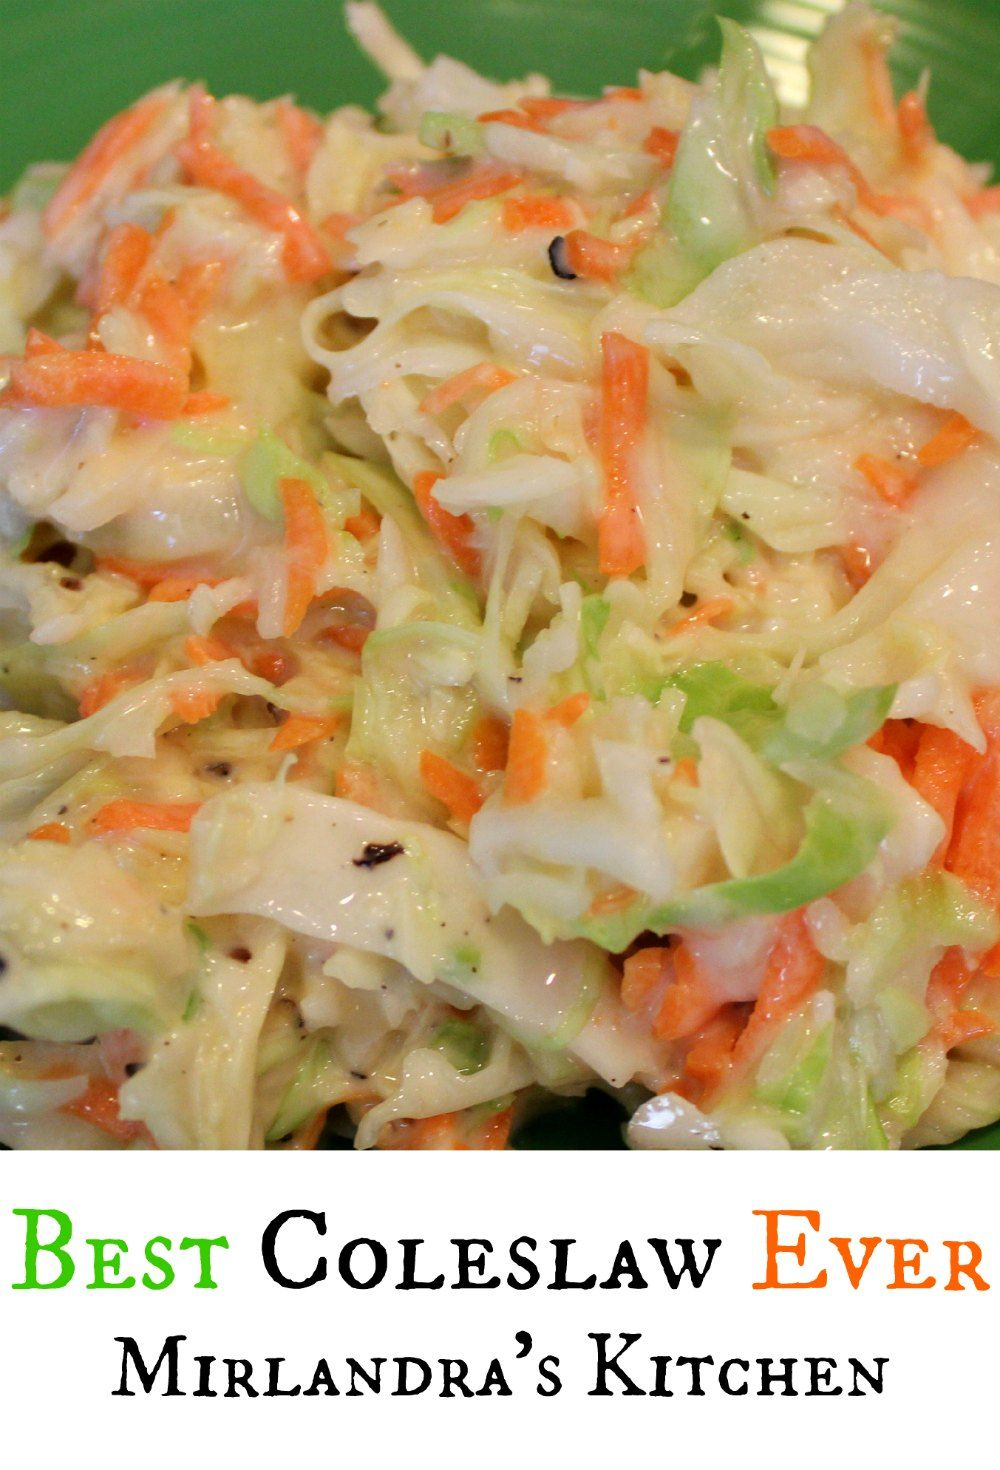 Quite simply the best coleslaw ever.  This recipe is flavorful, sweet and tangy but not heavy or gooey.  While not a true KFC copycat it has the same sweet flavor as KFC does which is what makes this one such a hit.  We love this with pulled pork, fish tacos, BBQ, and all those summer picnics and parties.  It is the all time most popular recipe on the blog!